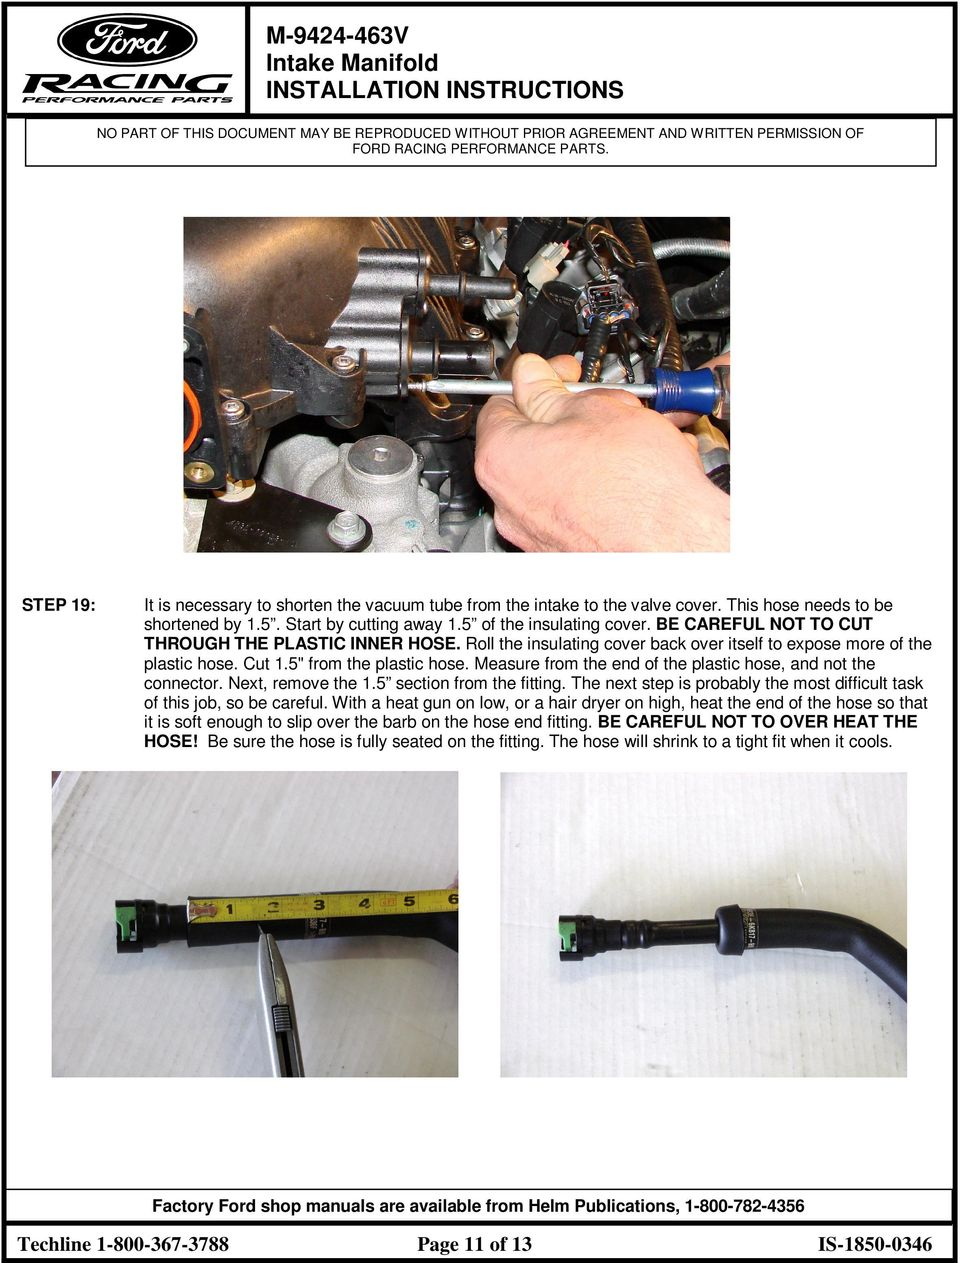 M V Intake Manifold Installation Instructions Pdf Nissan Maxima Radio Wiring Diagram Technical Articles 4th Gen Measure From The End Of Plastic Hose And Not Connector Next